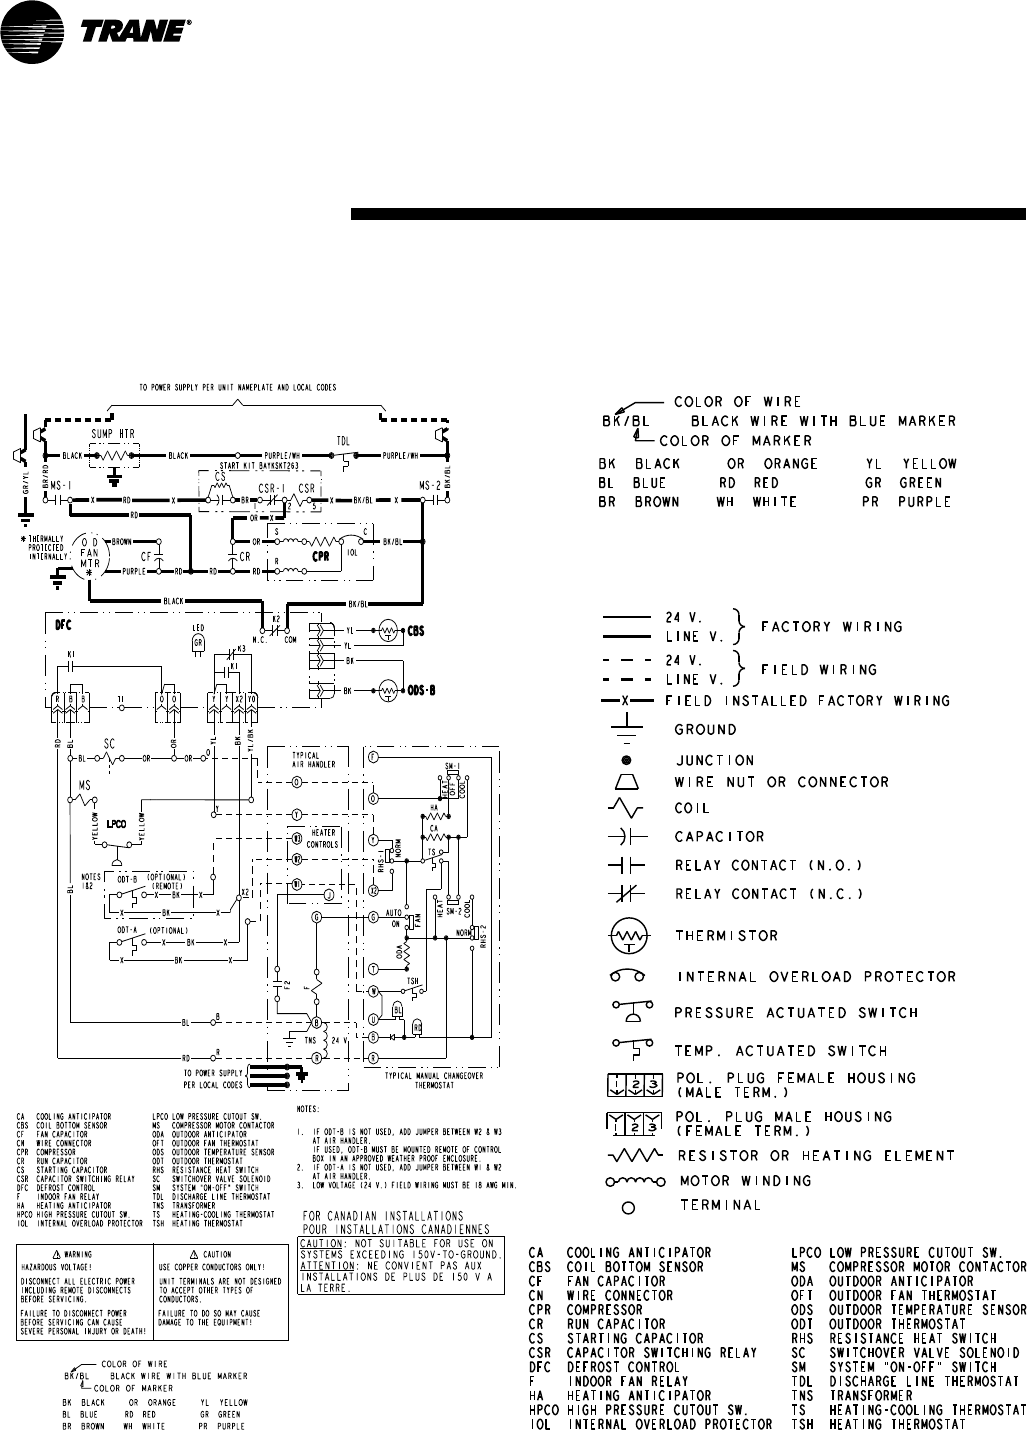 eeff7b43 cd50 49bc a0c8 e5716b4baaba bg8 trane wsc060 wiring diagram on trane images free download wiring trane wsc060 wiring diagrams at virtualis.co